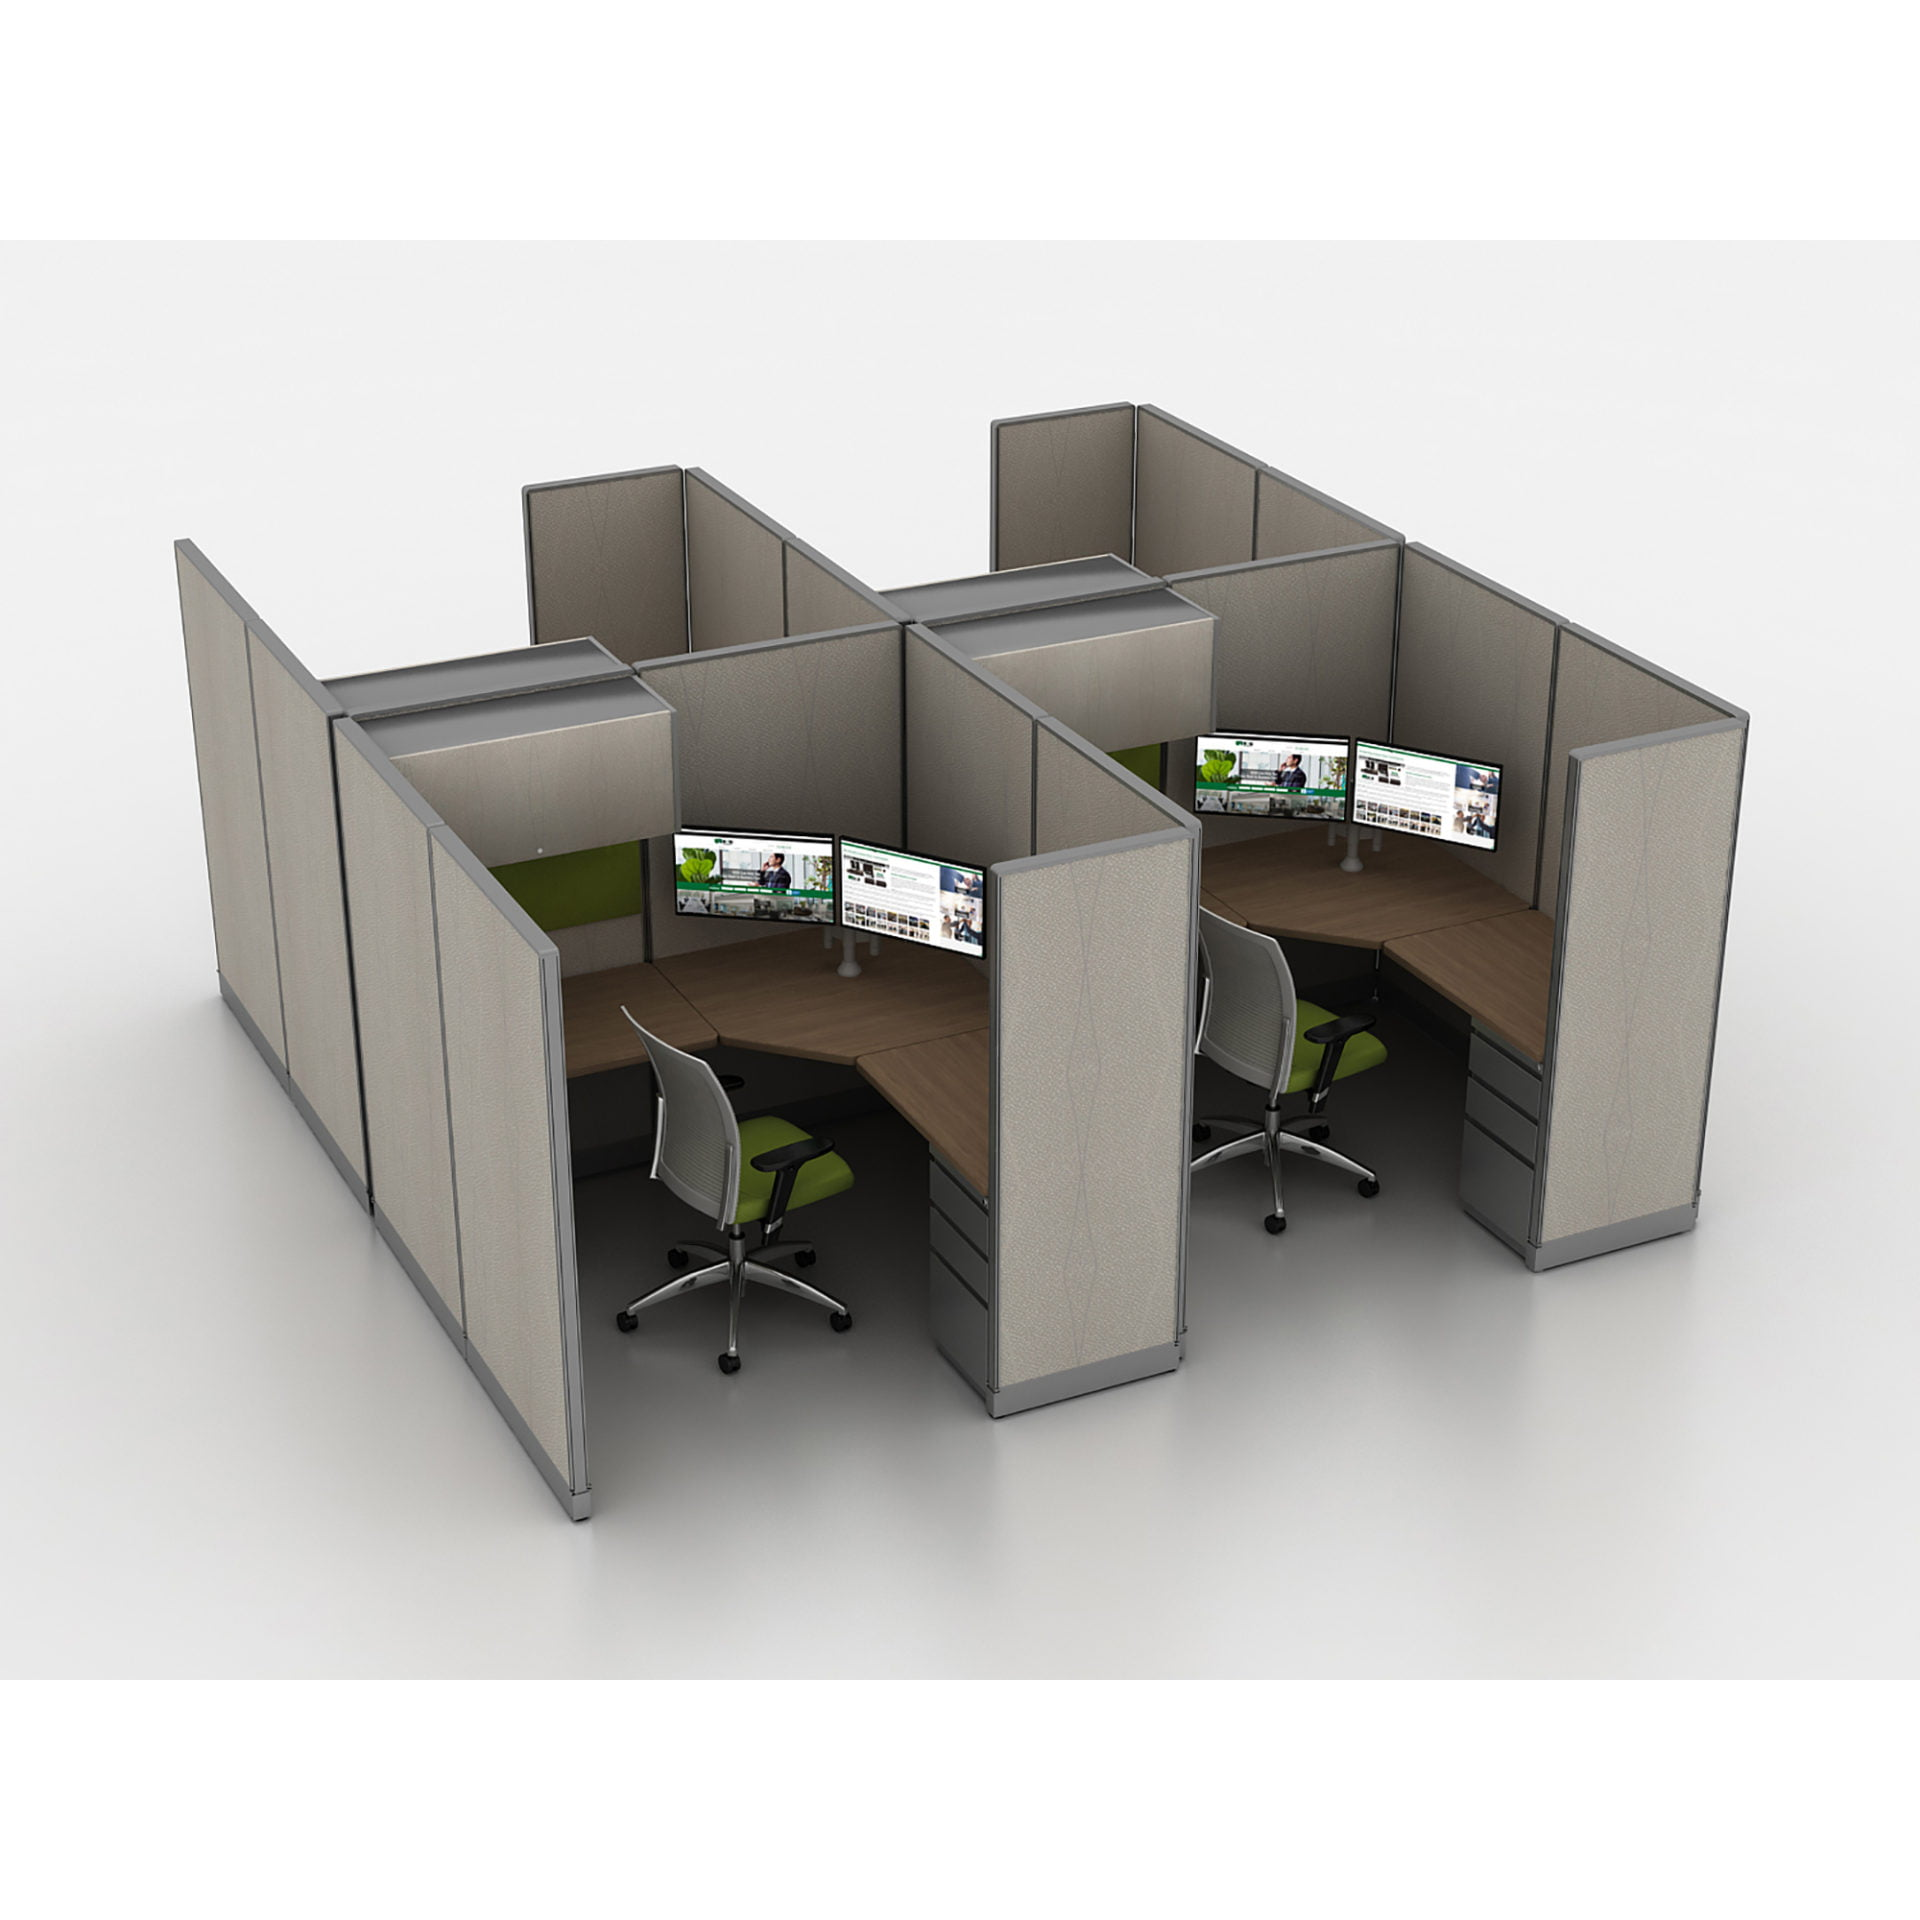 6x6x66-4pack-private cubicle